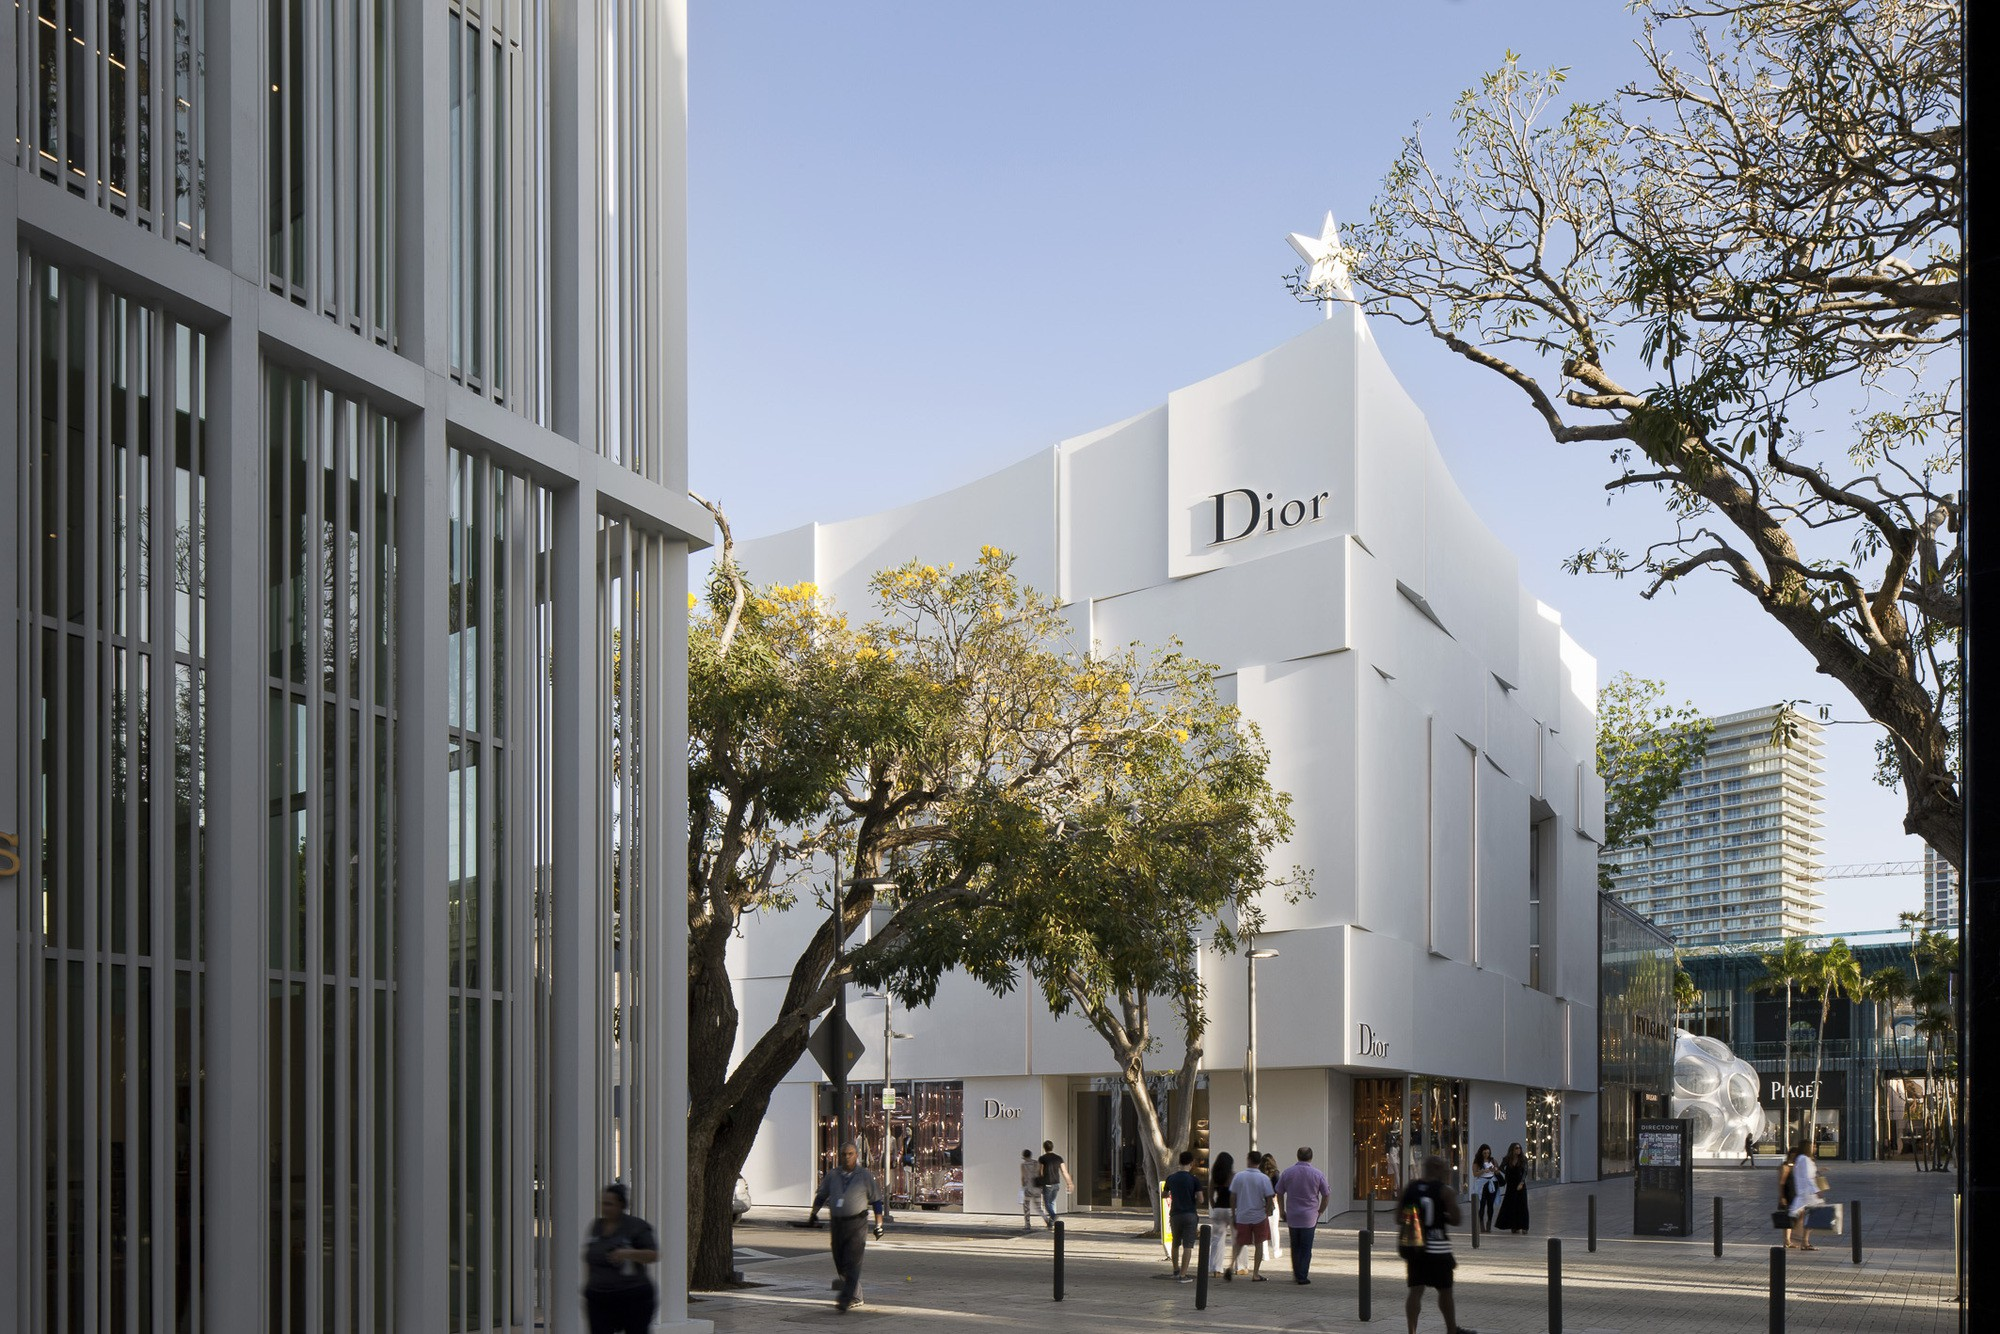 Dior Miami Facade-yesonfashion-com-05